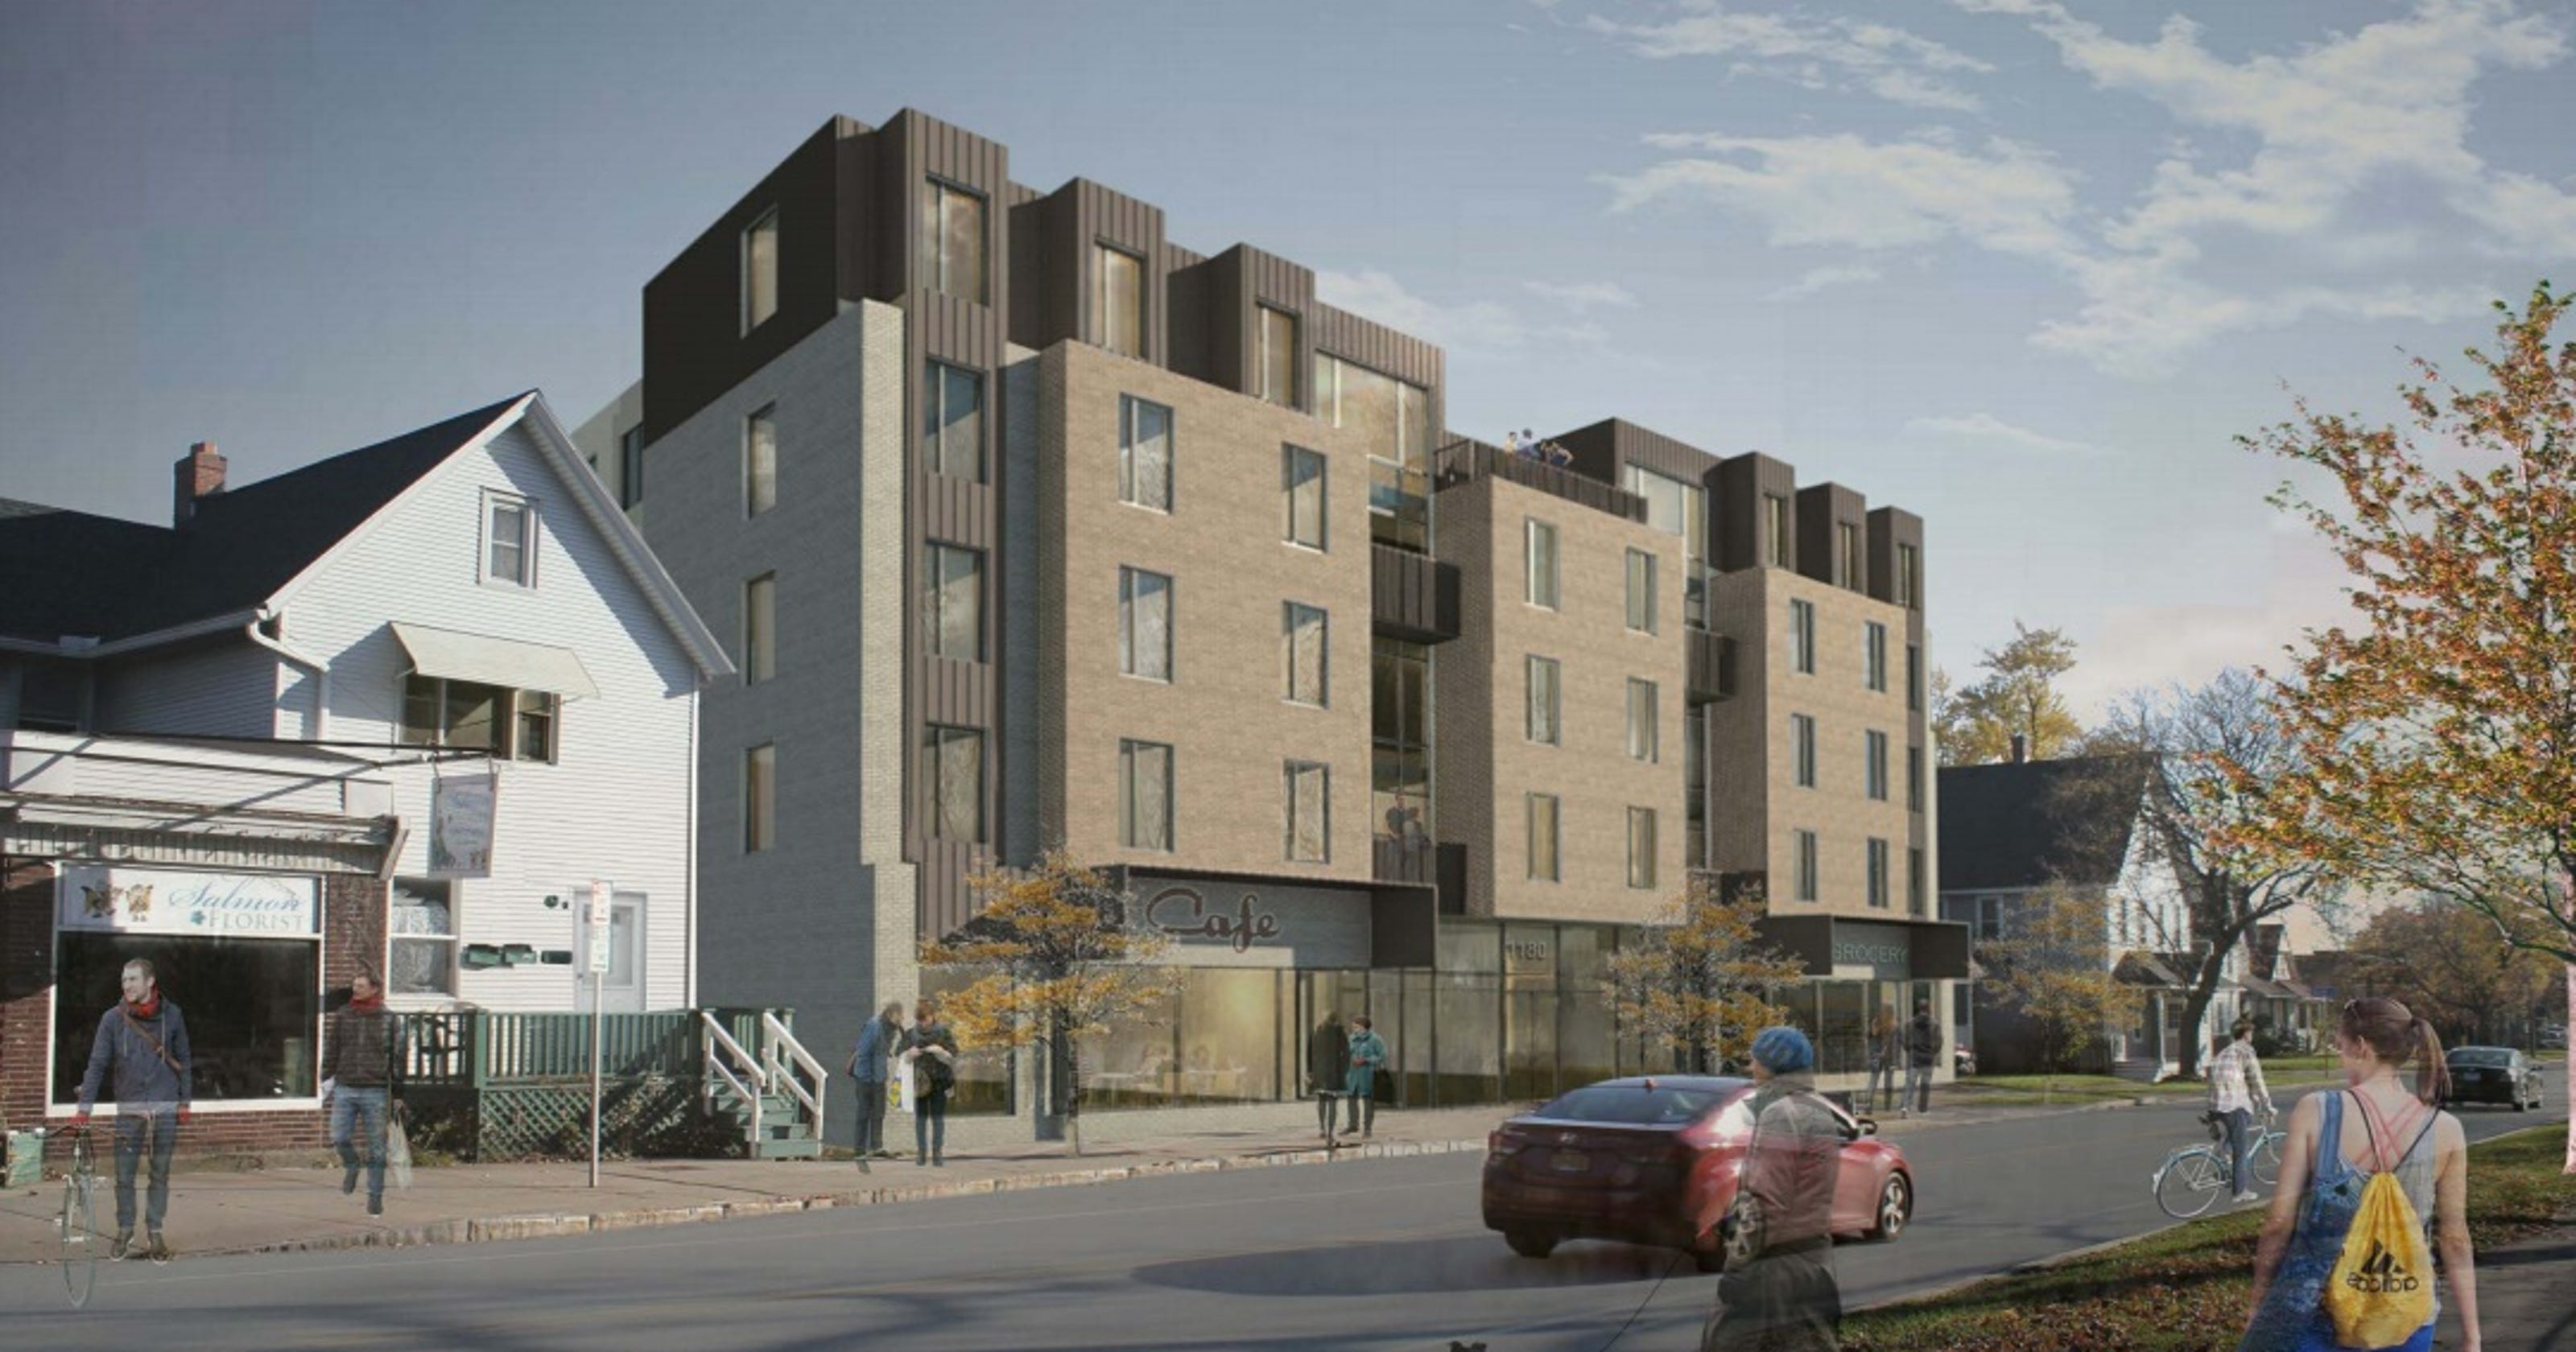 Odd Fix Mt Hope Developer Can Get Around Parking Needs By Making Apartments Ger